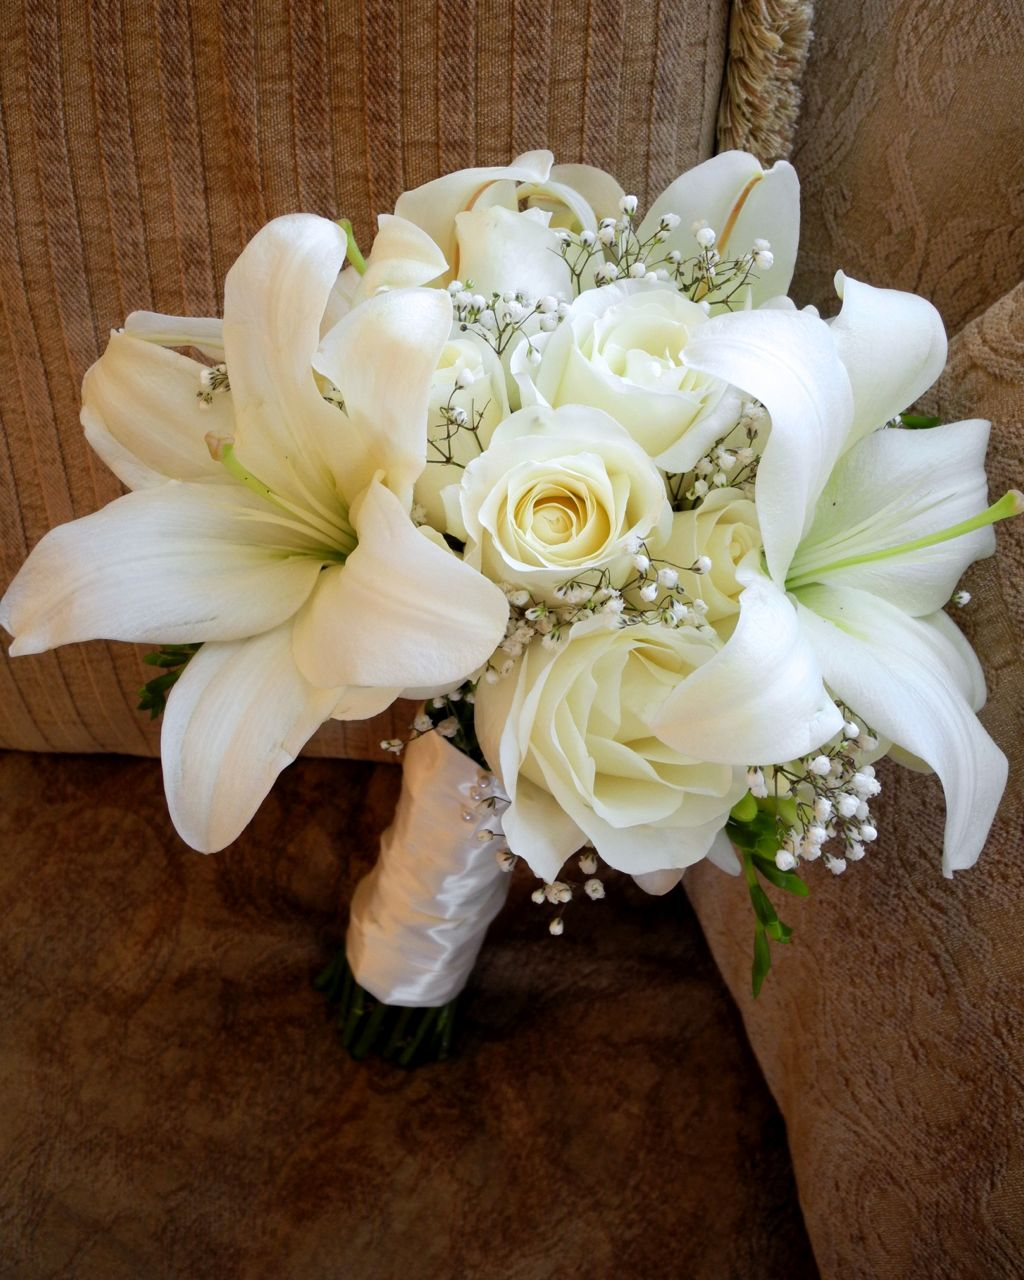 Wedding Bridal Flowers: The Flower Girl Blog: White Bridal Bouquet